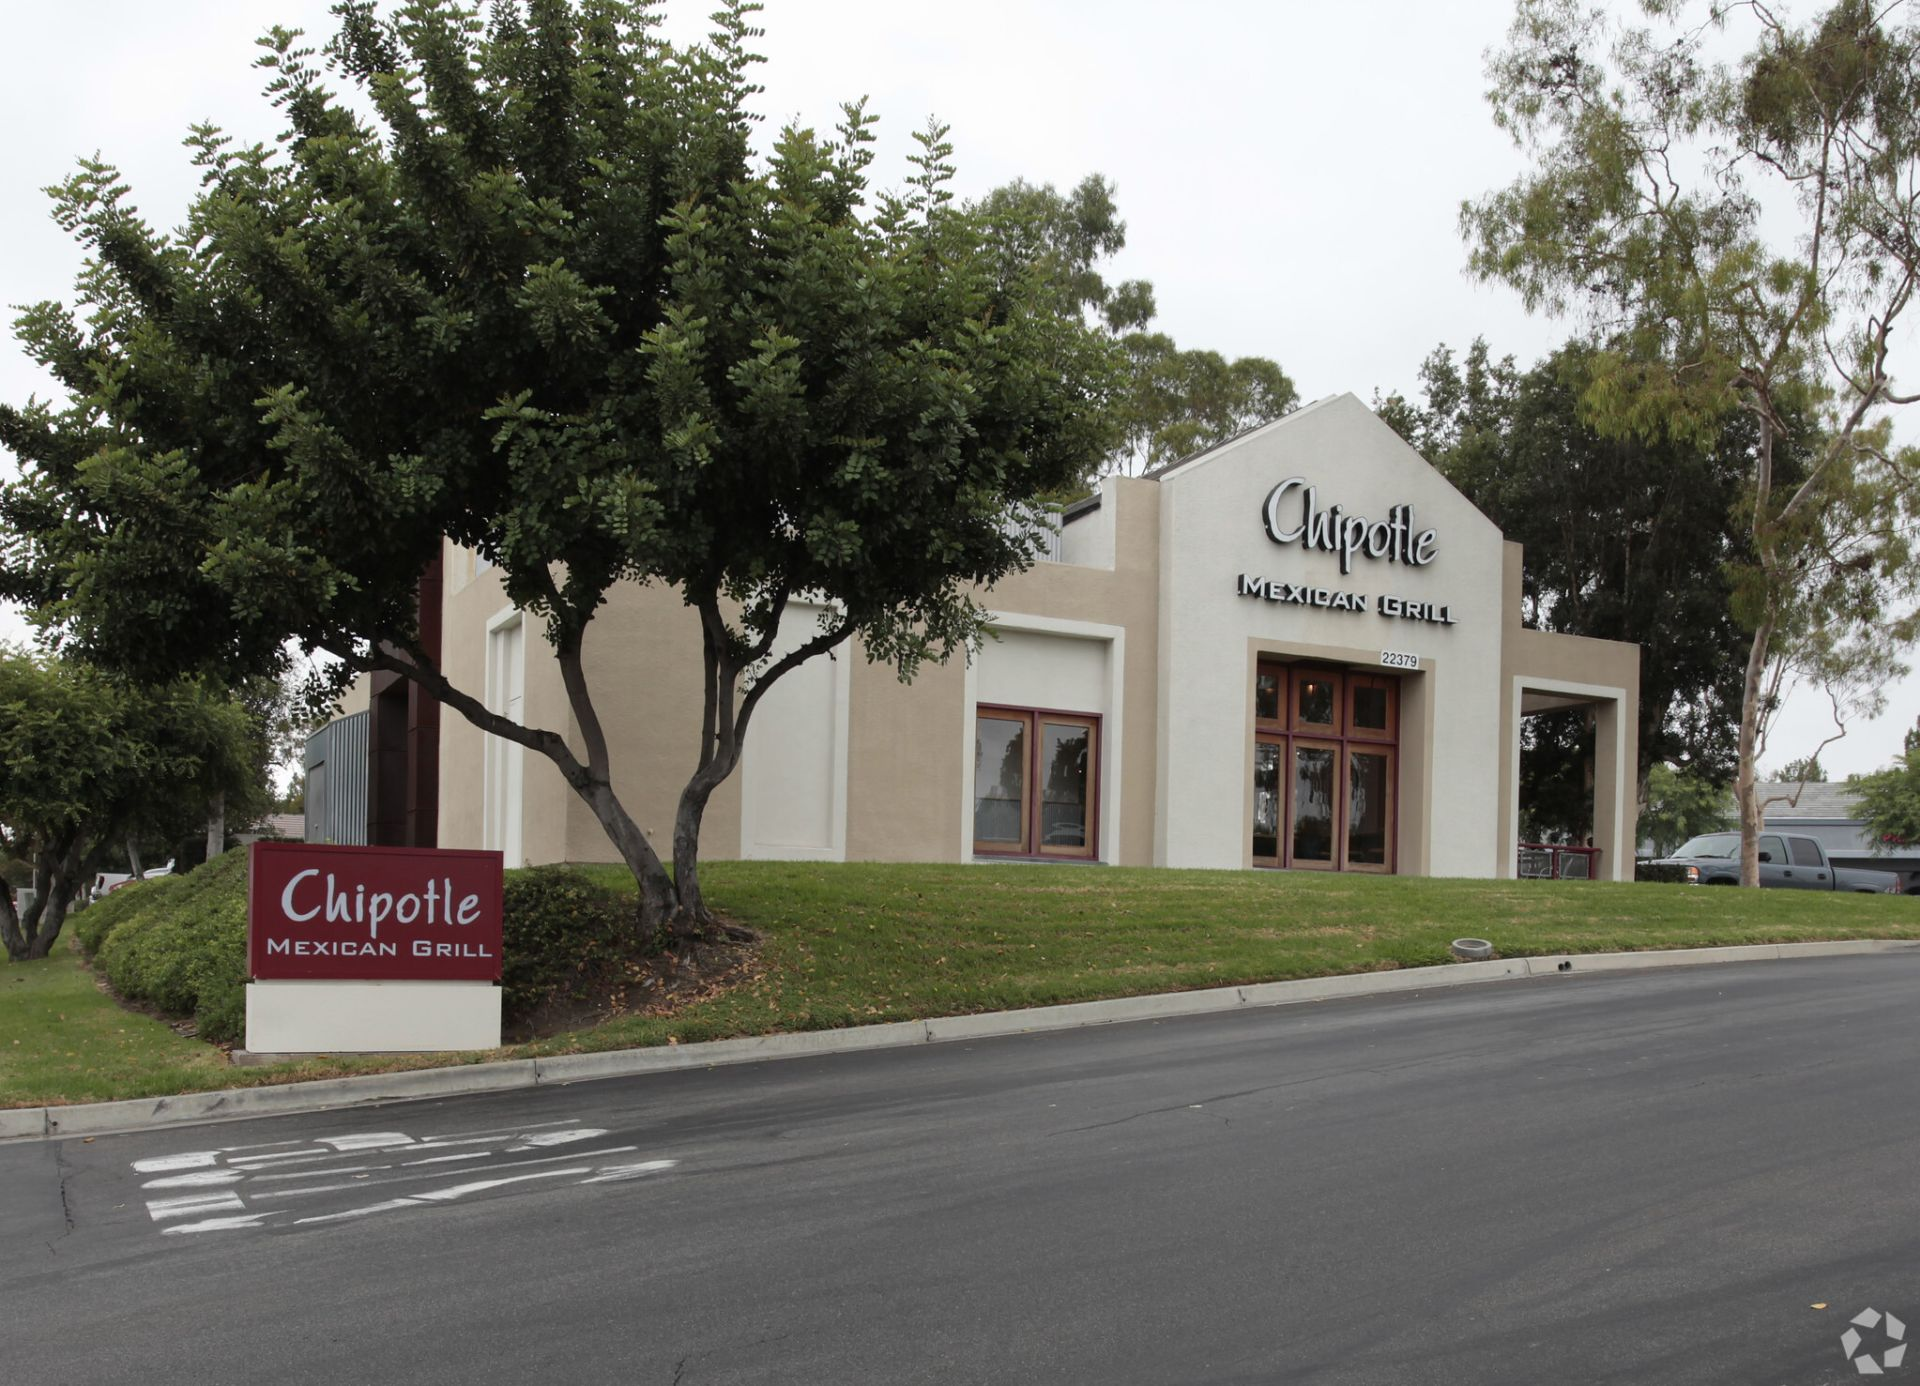 Chipotle Scouts for Post-Pandemic Real Estate Expansions